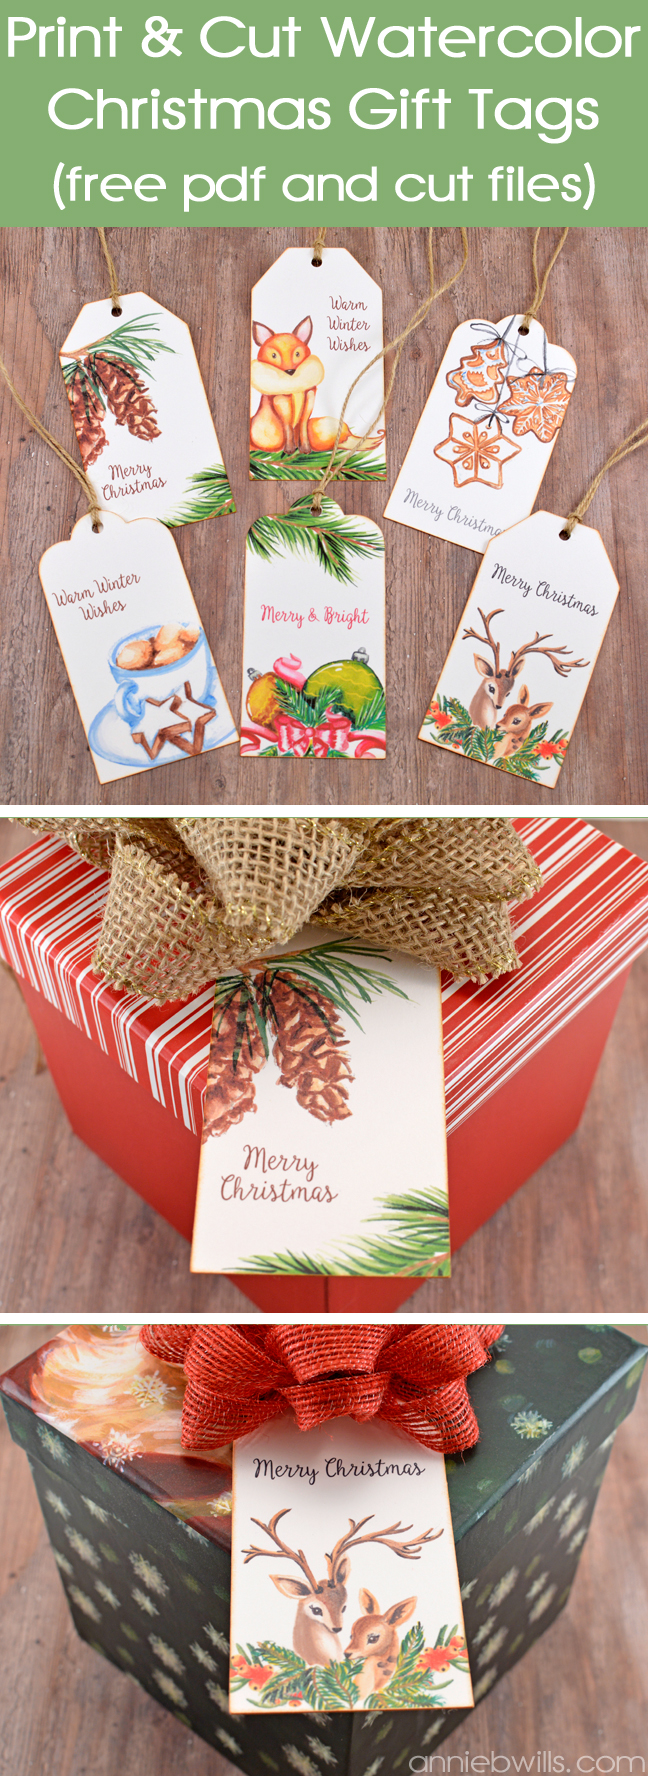 print-cut-watercolor-christmas-gift-tags-by-annie-williams-main